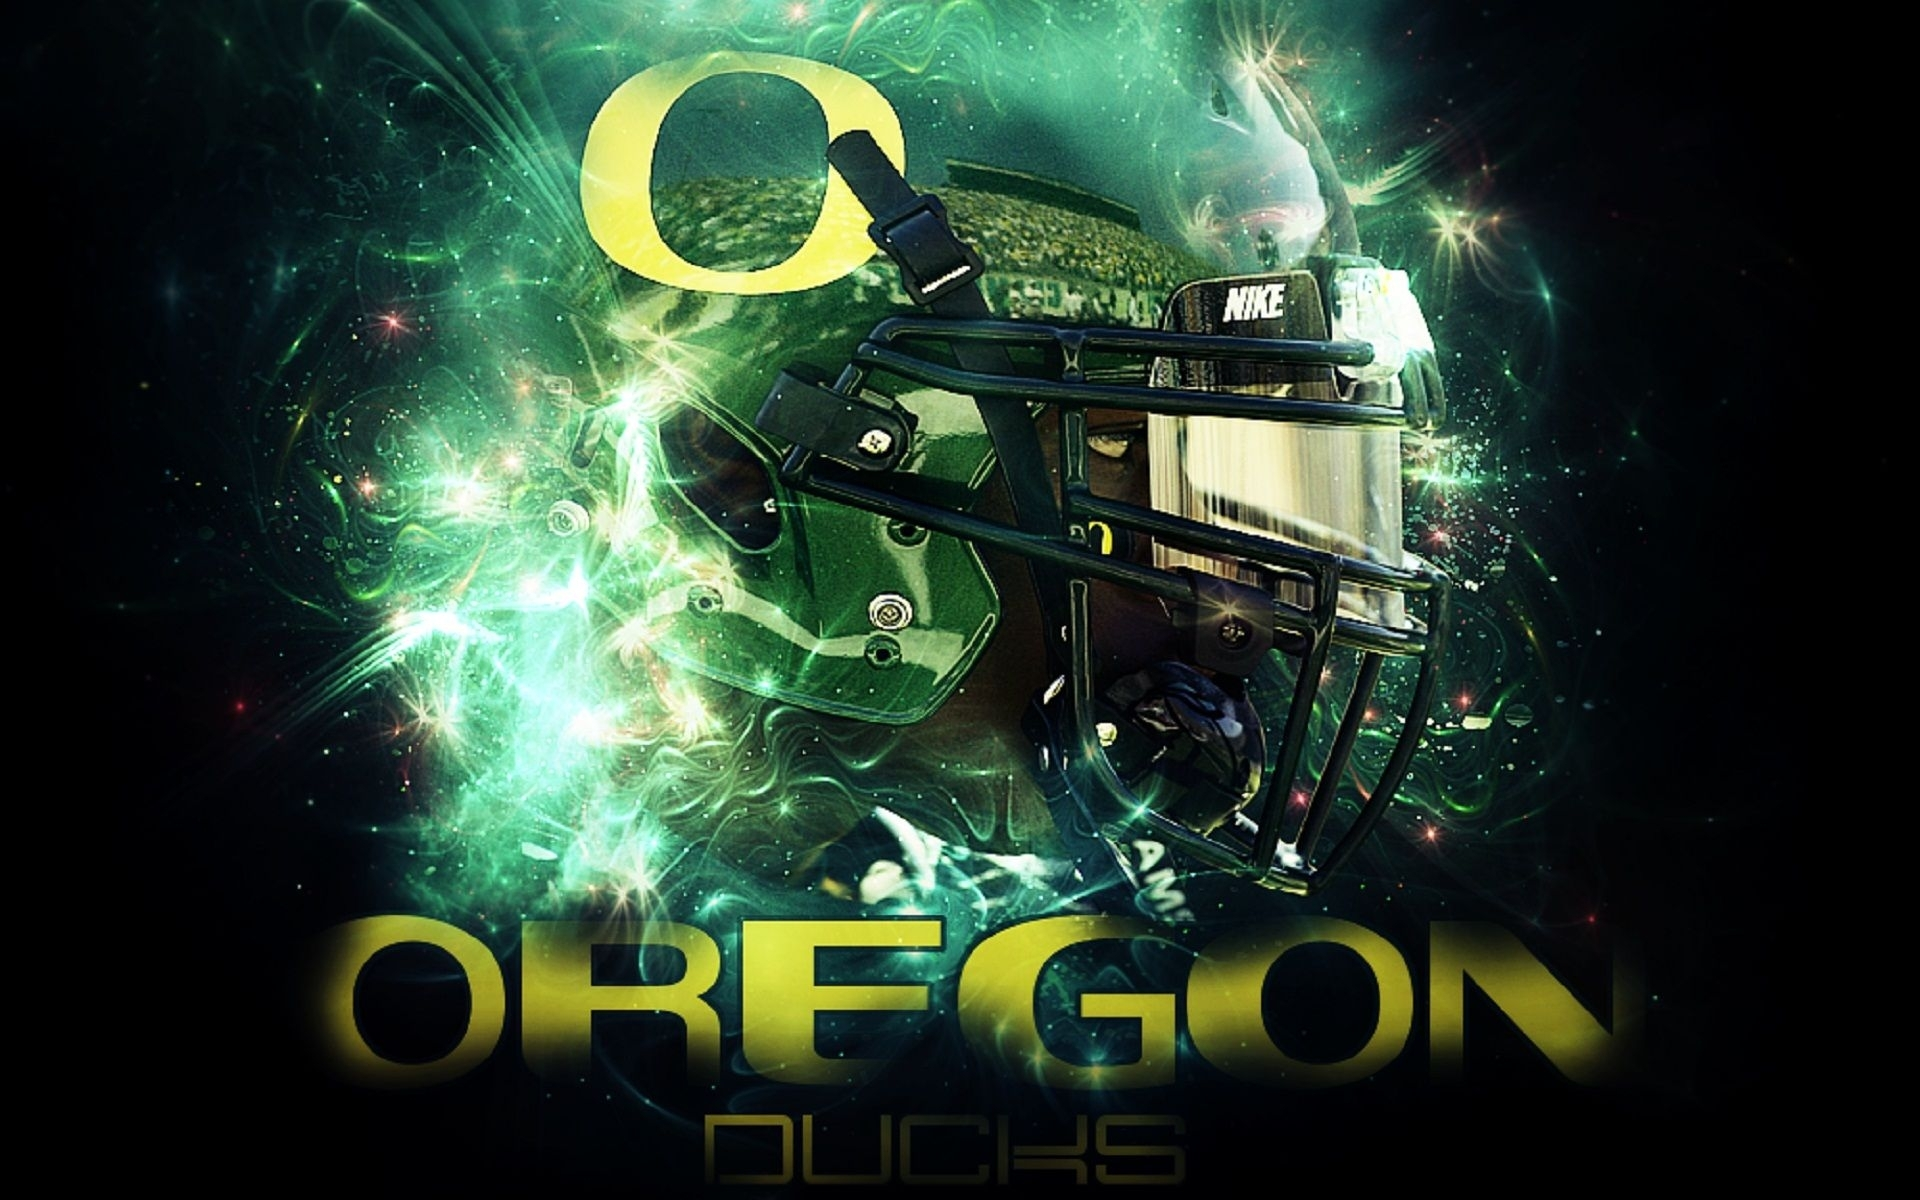 oregon duck wallpapers group (67+)